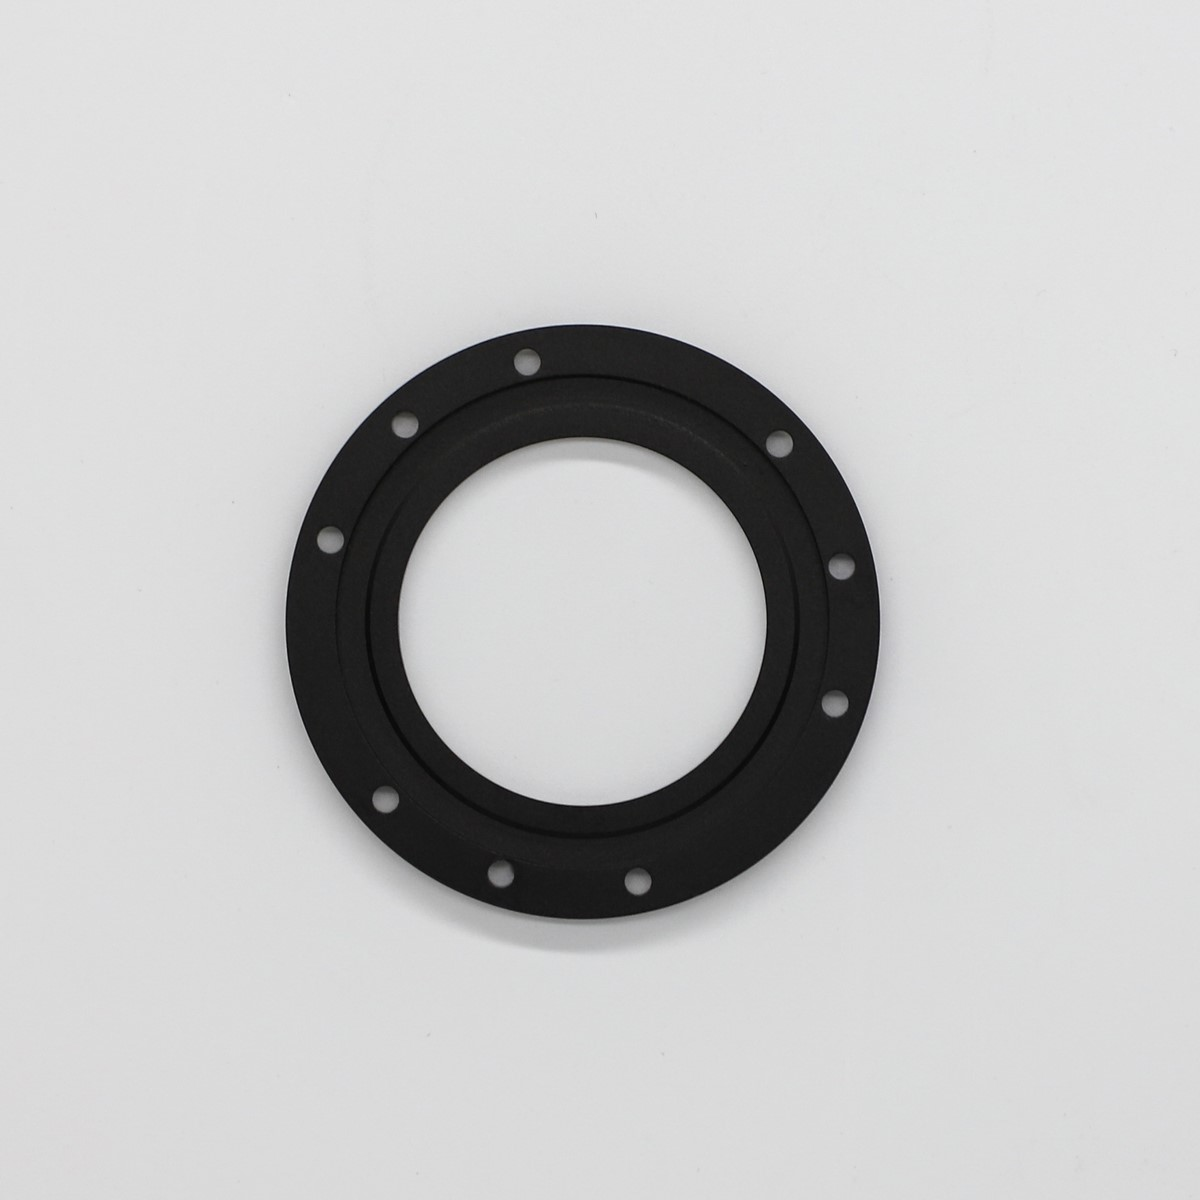 Xavier high-precision cnc machined lens parts high performance from top factory-1